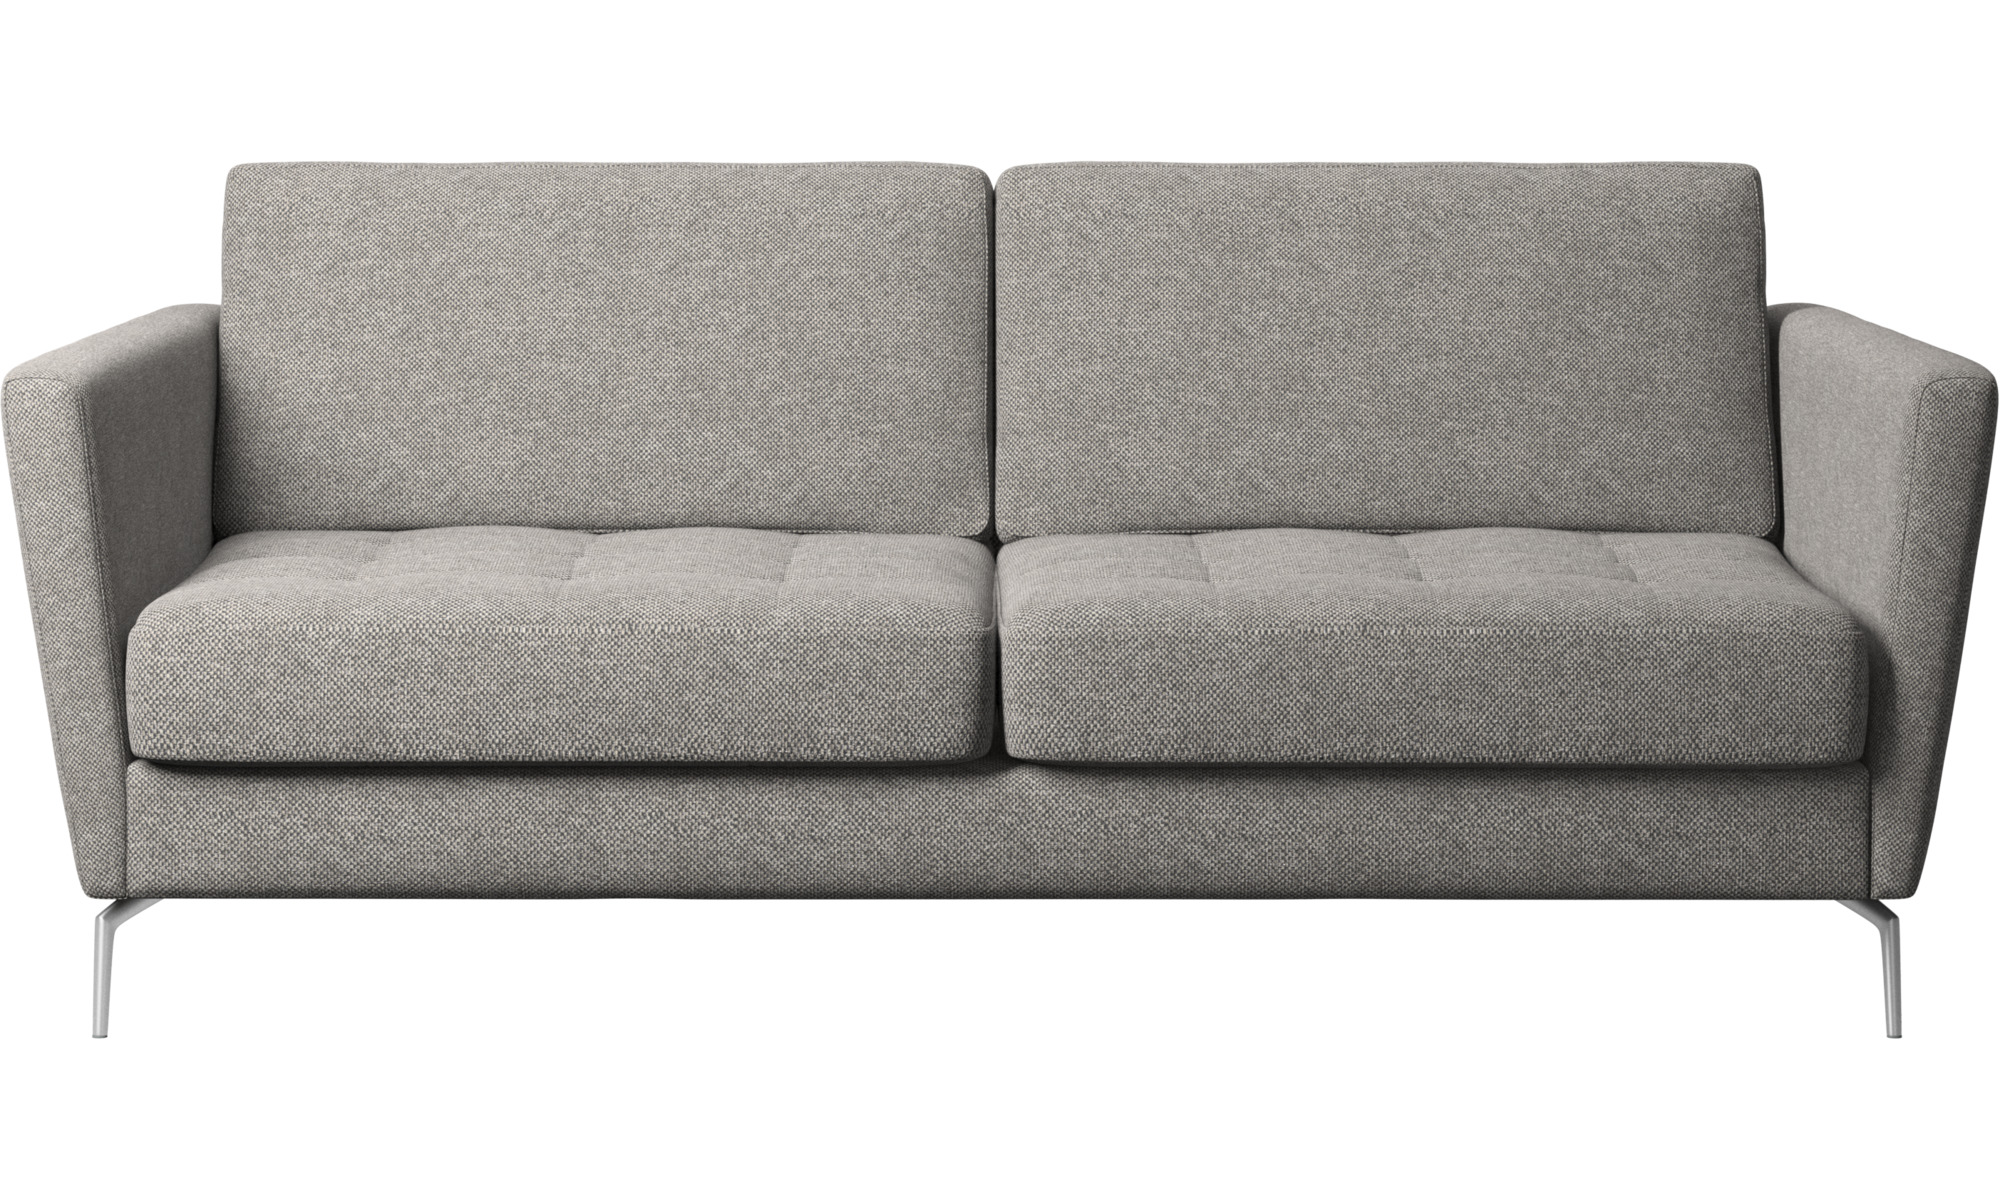 Sofa Beds Osaka Bed Tufted Seat